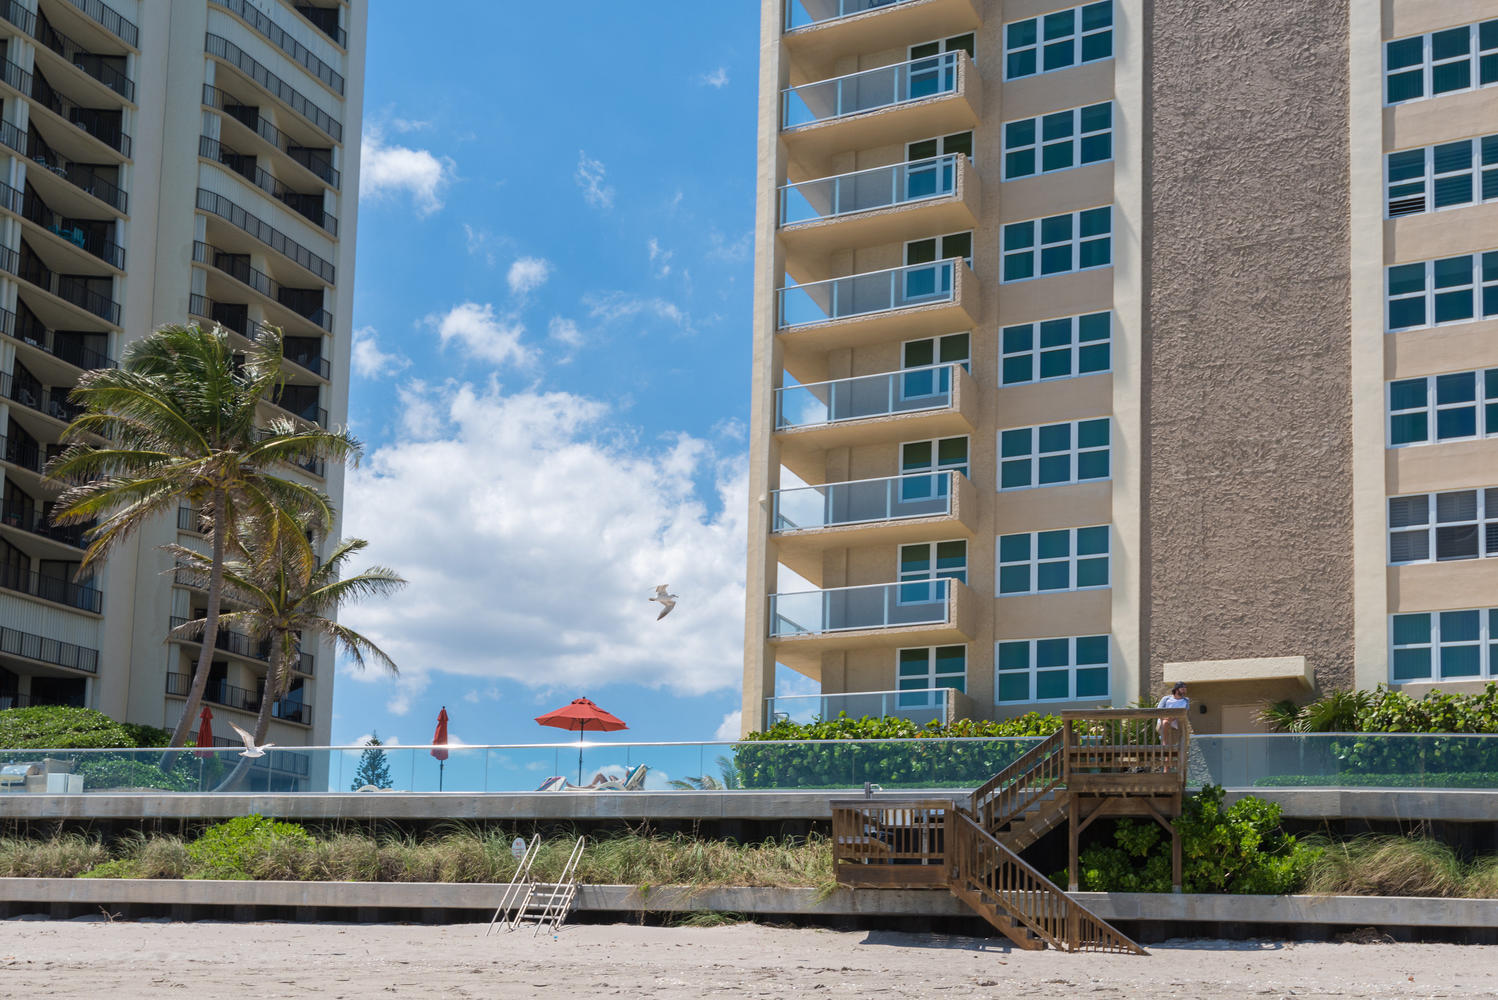 New Home for sale at 5440 Ocean Drive in Singer Island